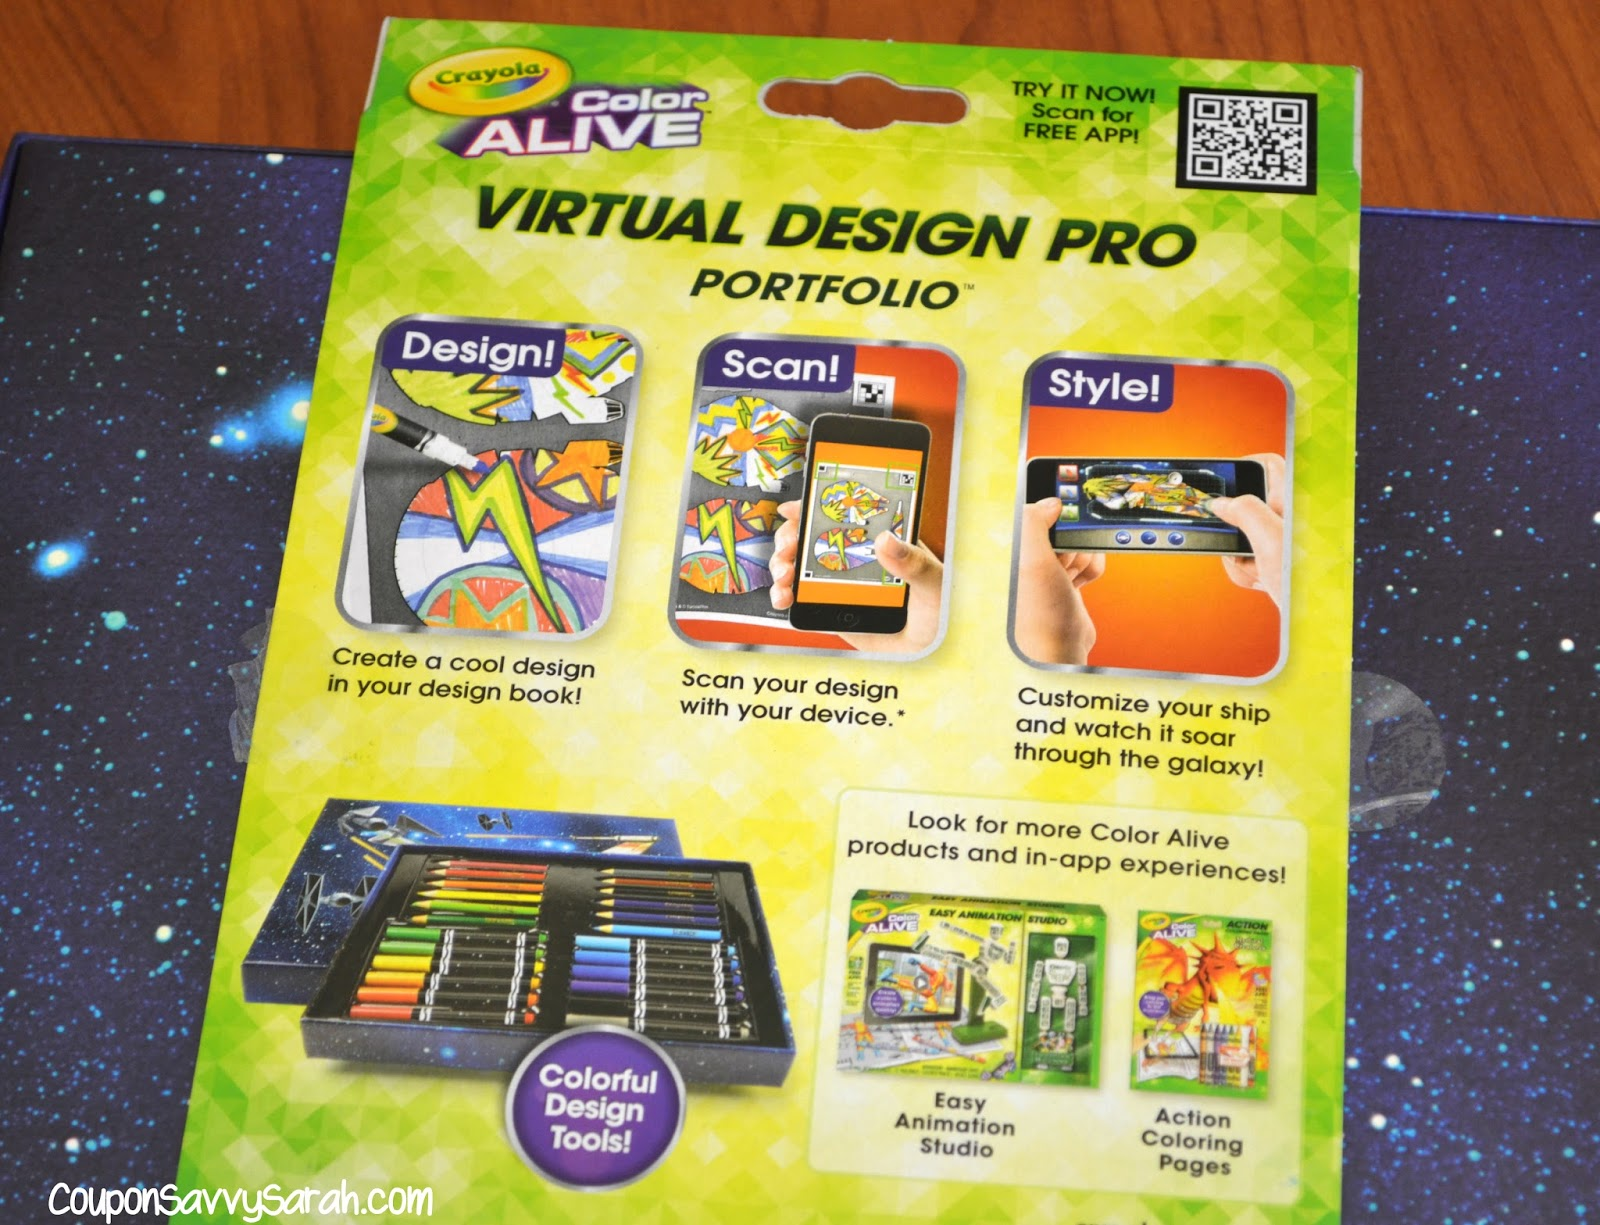 Online virtual coloring - Both The Crayola S Color Alive Frozen And Star Wars Virtual Design Pro Are Available At Major Retailers Nationwide In Addition To Online At Crayola S